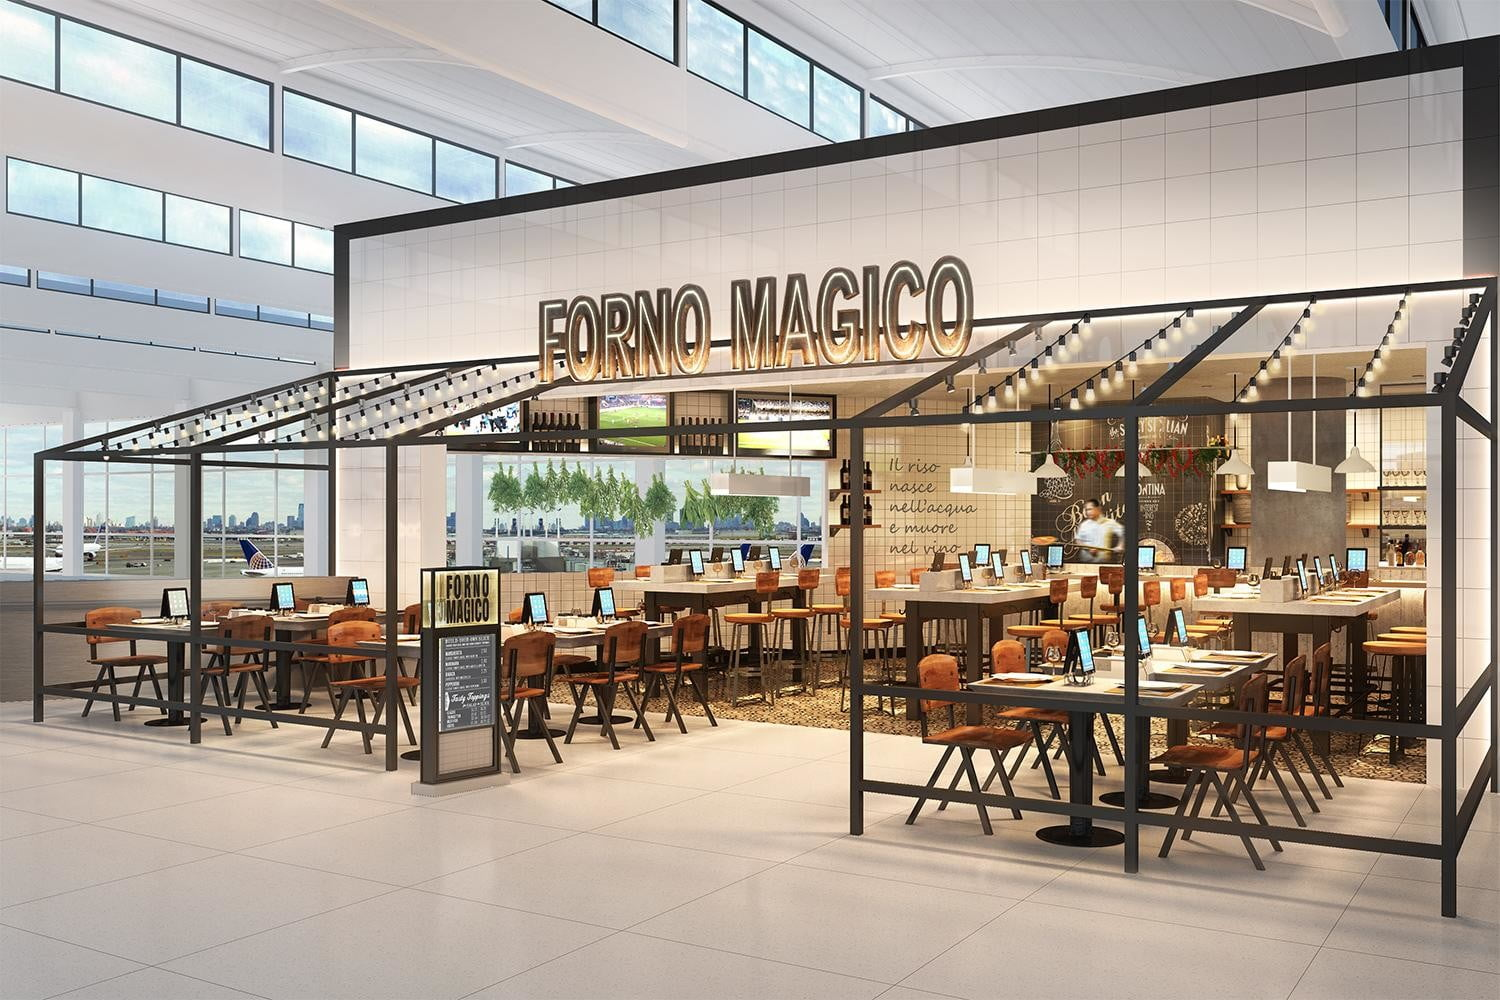 ipads are replacing waiters in airport restaurants creme c3 f4 fornomagico view1